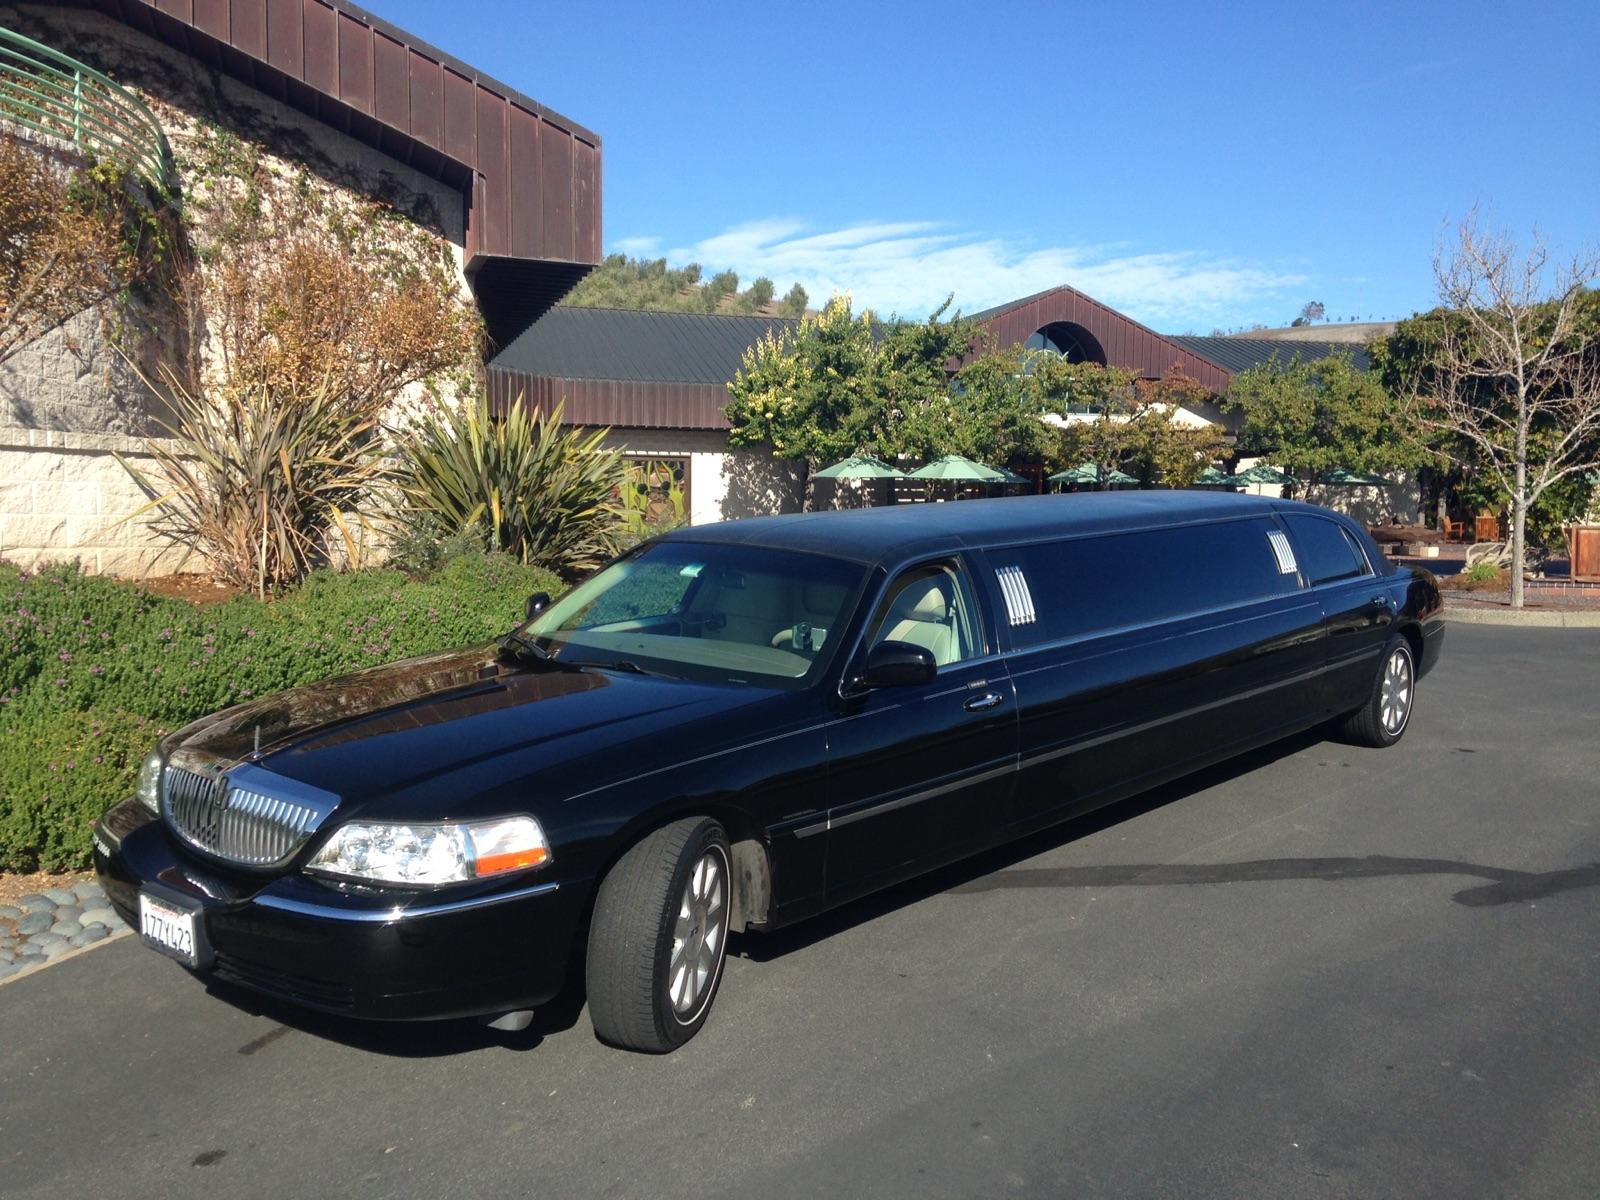 8 Passenger Lincoln Stretch Limousine